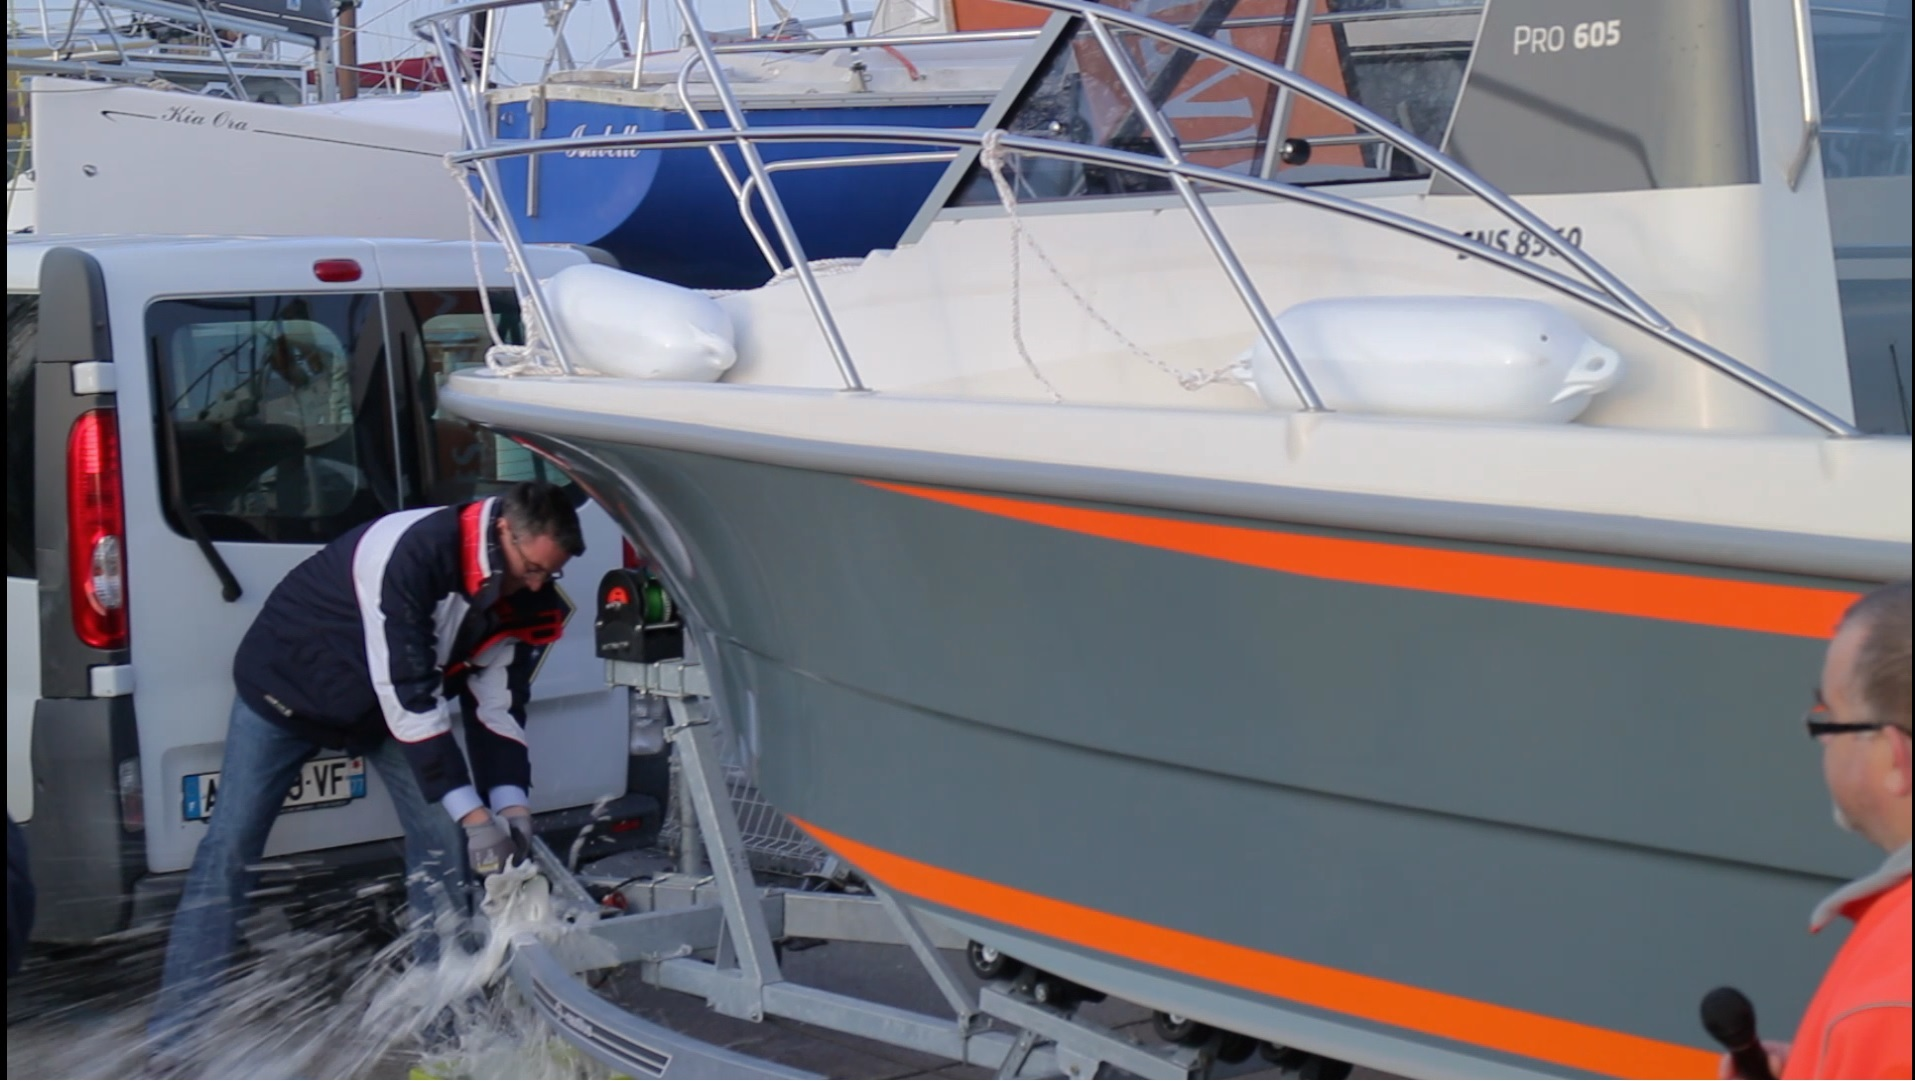 Launch of the second TIMONIER 605 of french sea recue association